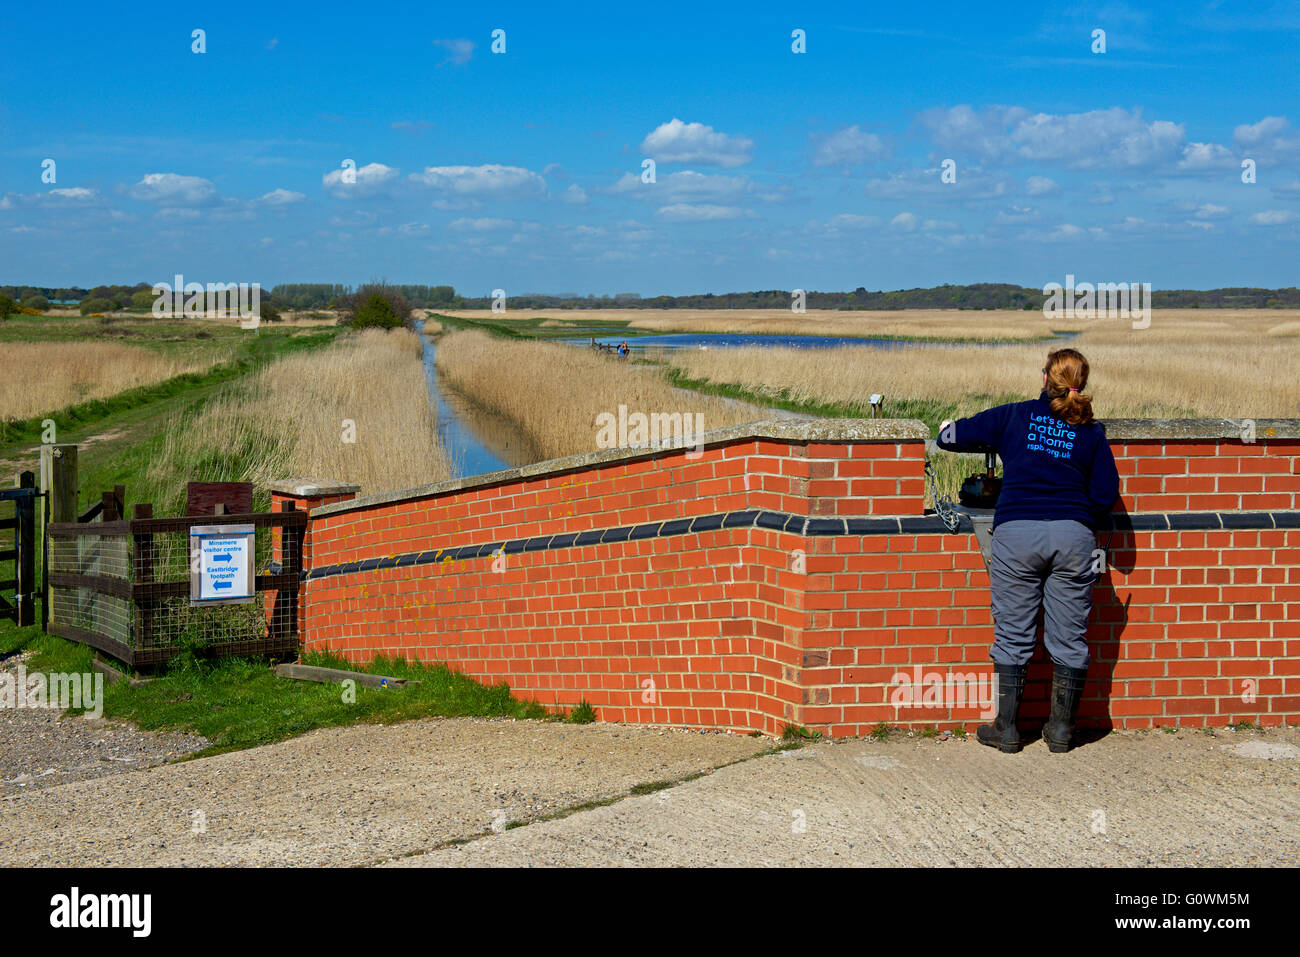 Young woman operating sluice gate at Minsmere, an RSPB bird reserve, Suffolk, England UK - Stock Image